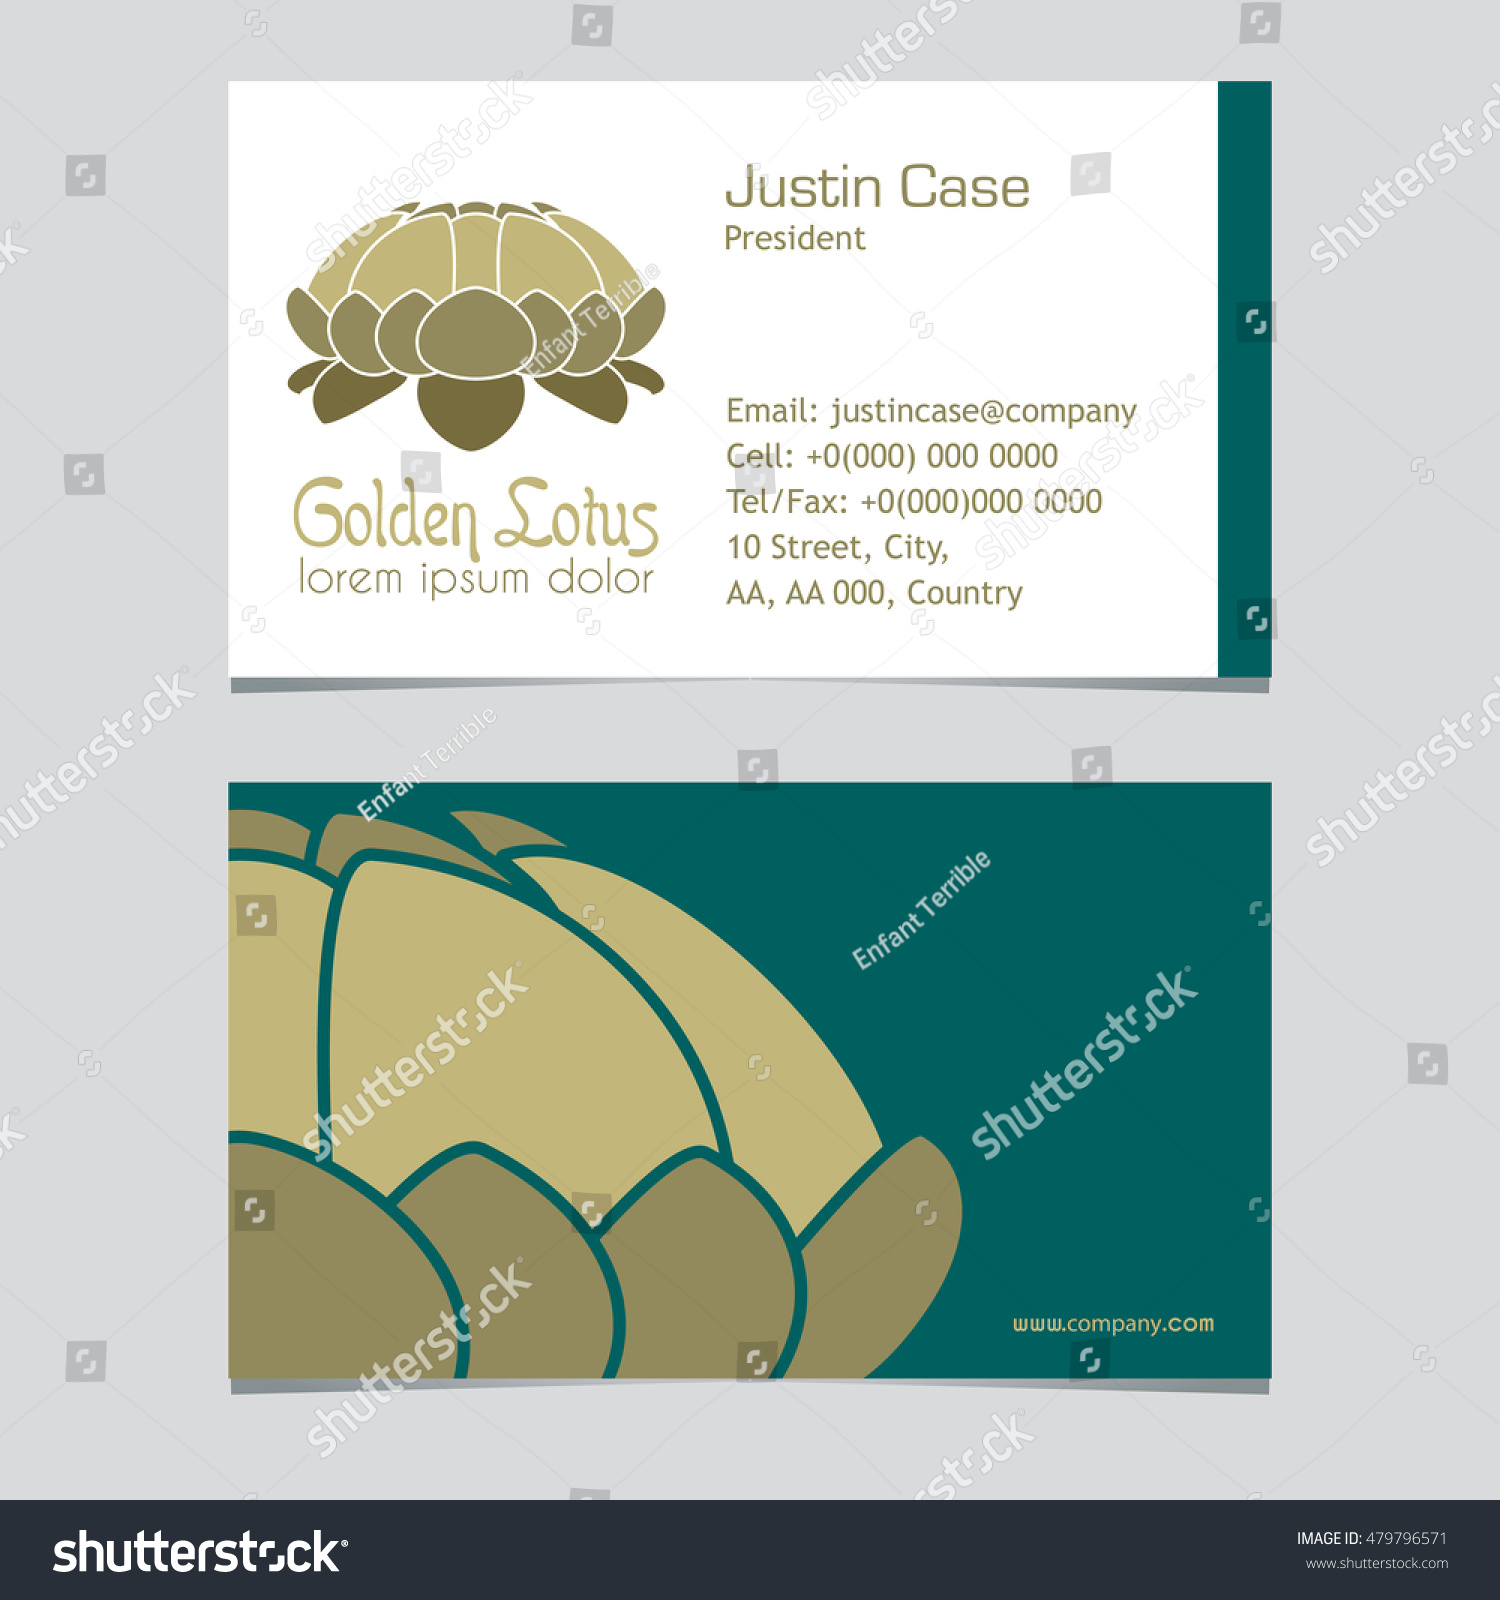 Lotus Flower Vector Icon Business Card Stock Vector (2018) 479796571 ...